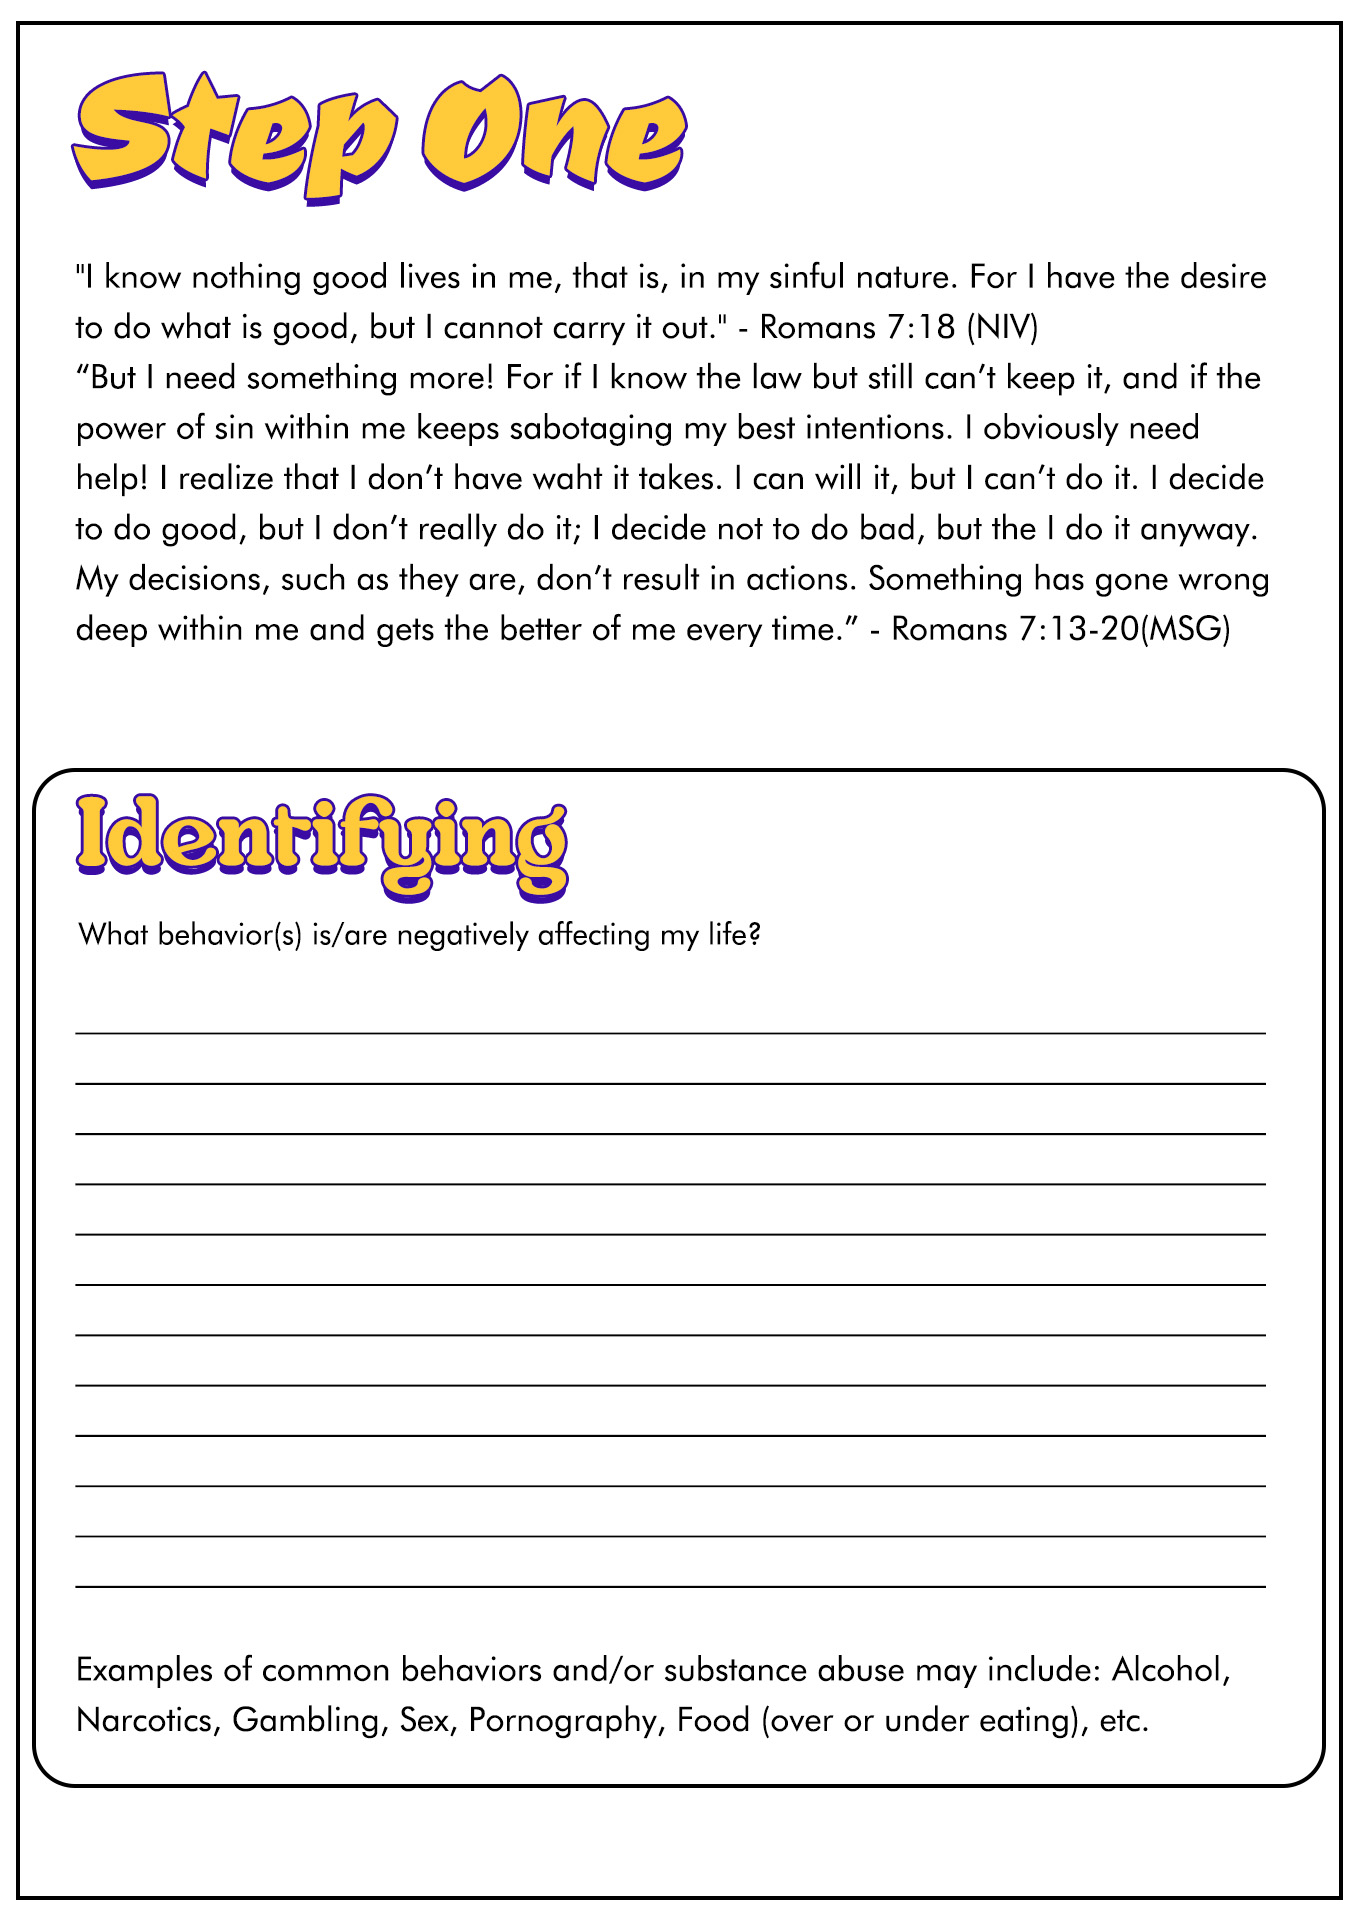 15 Best Images Of 12 Step Recovery Worksheets